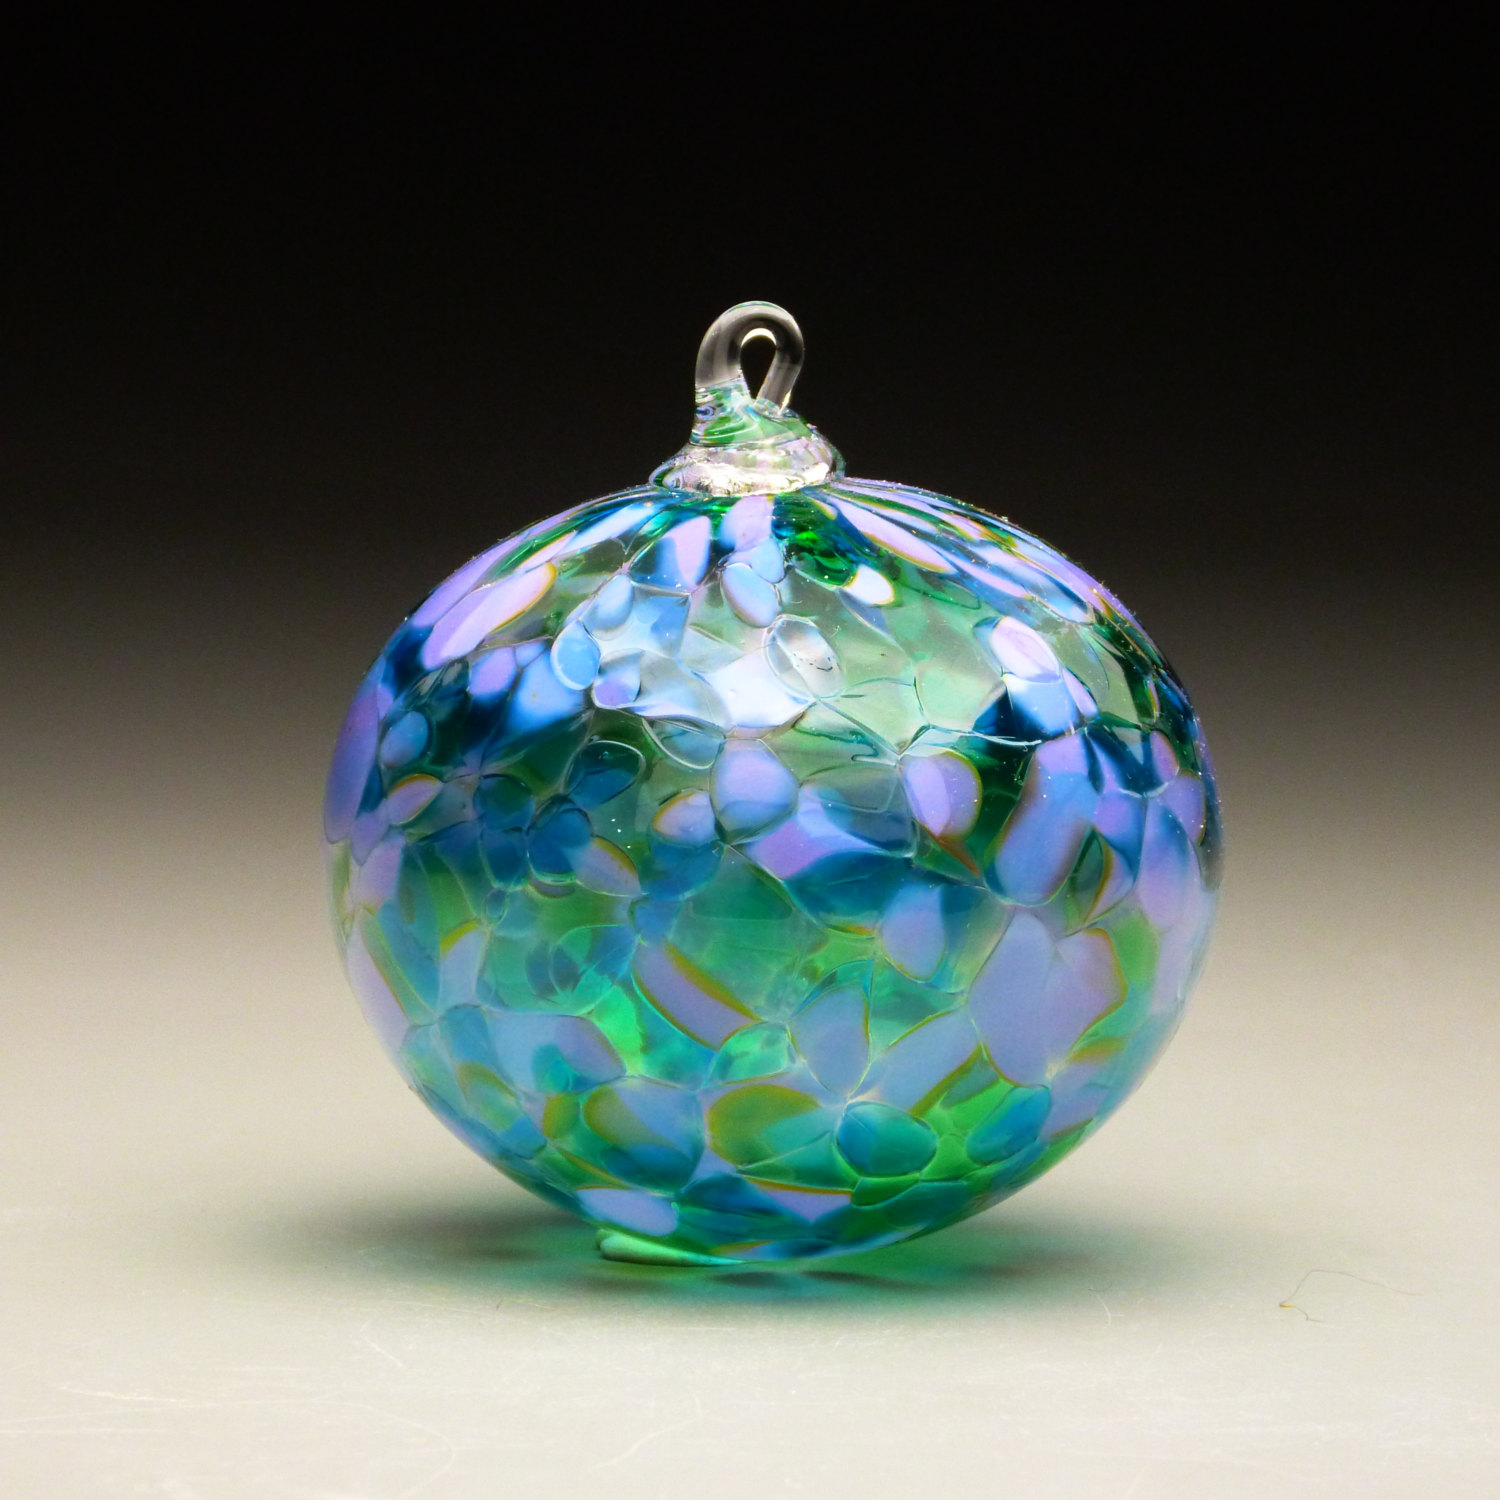 Handmade glass christmas ornaments - 3 Blown Glass Christmas Ornament